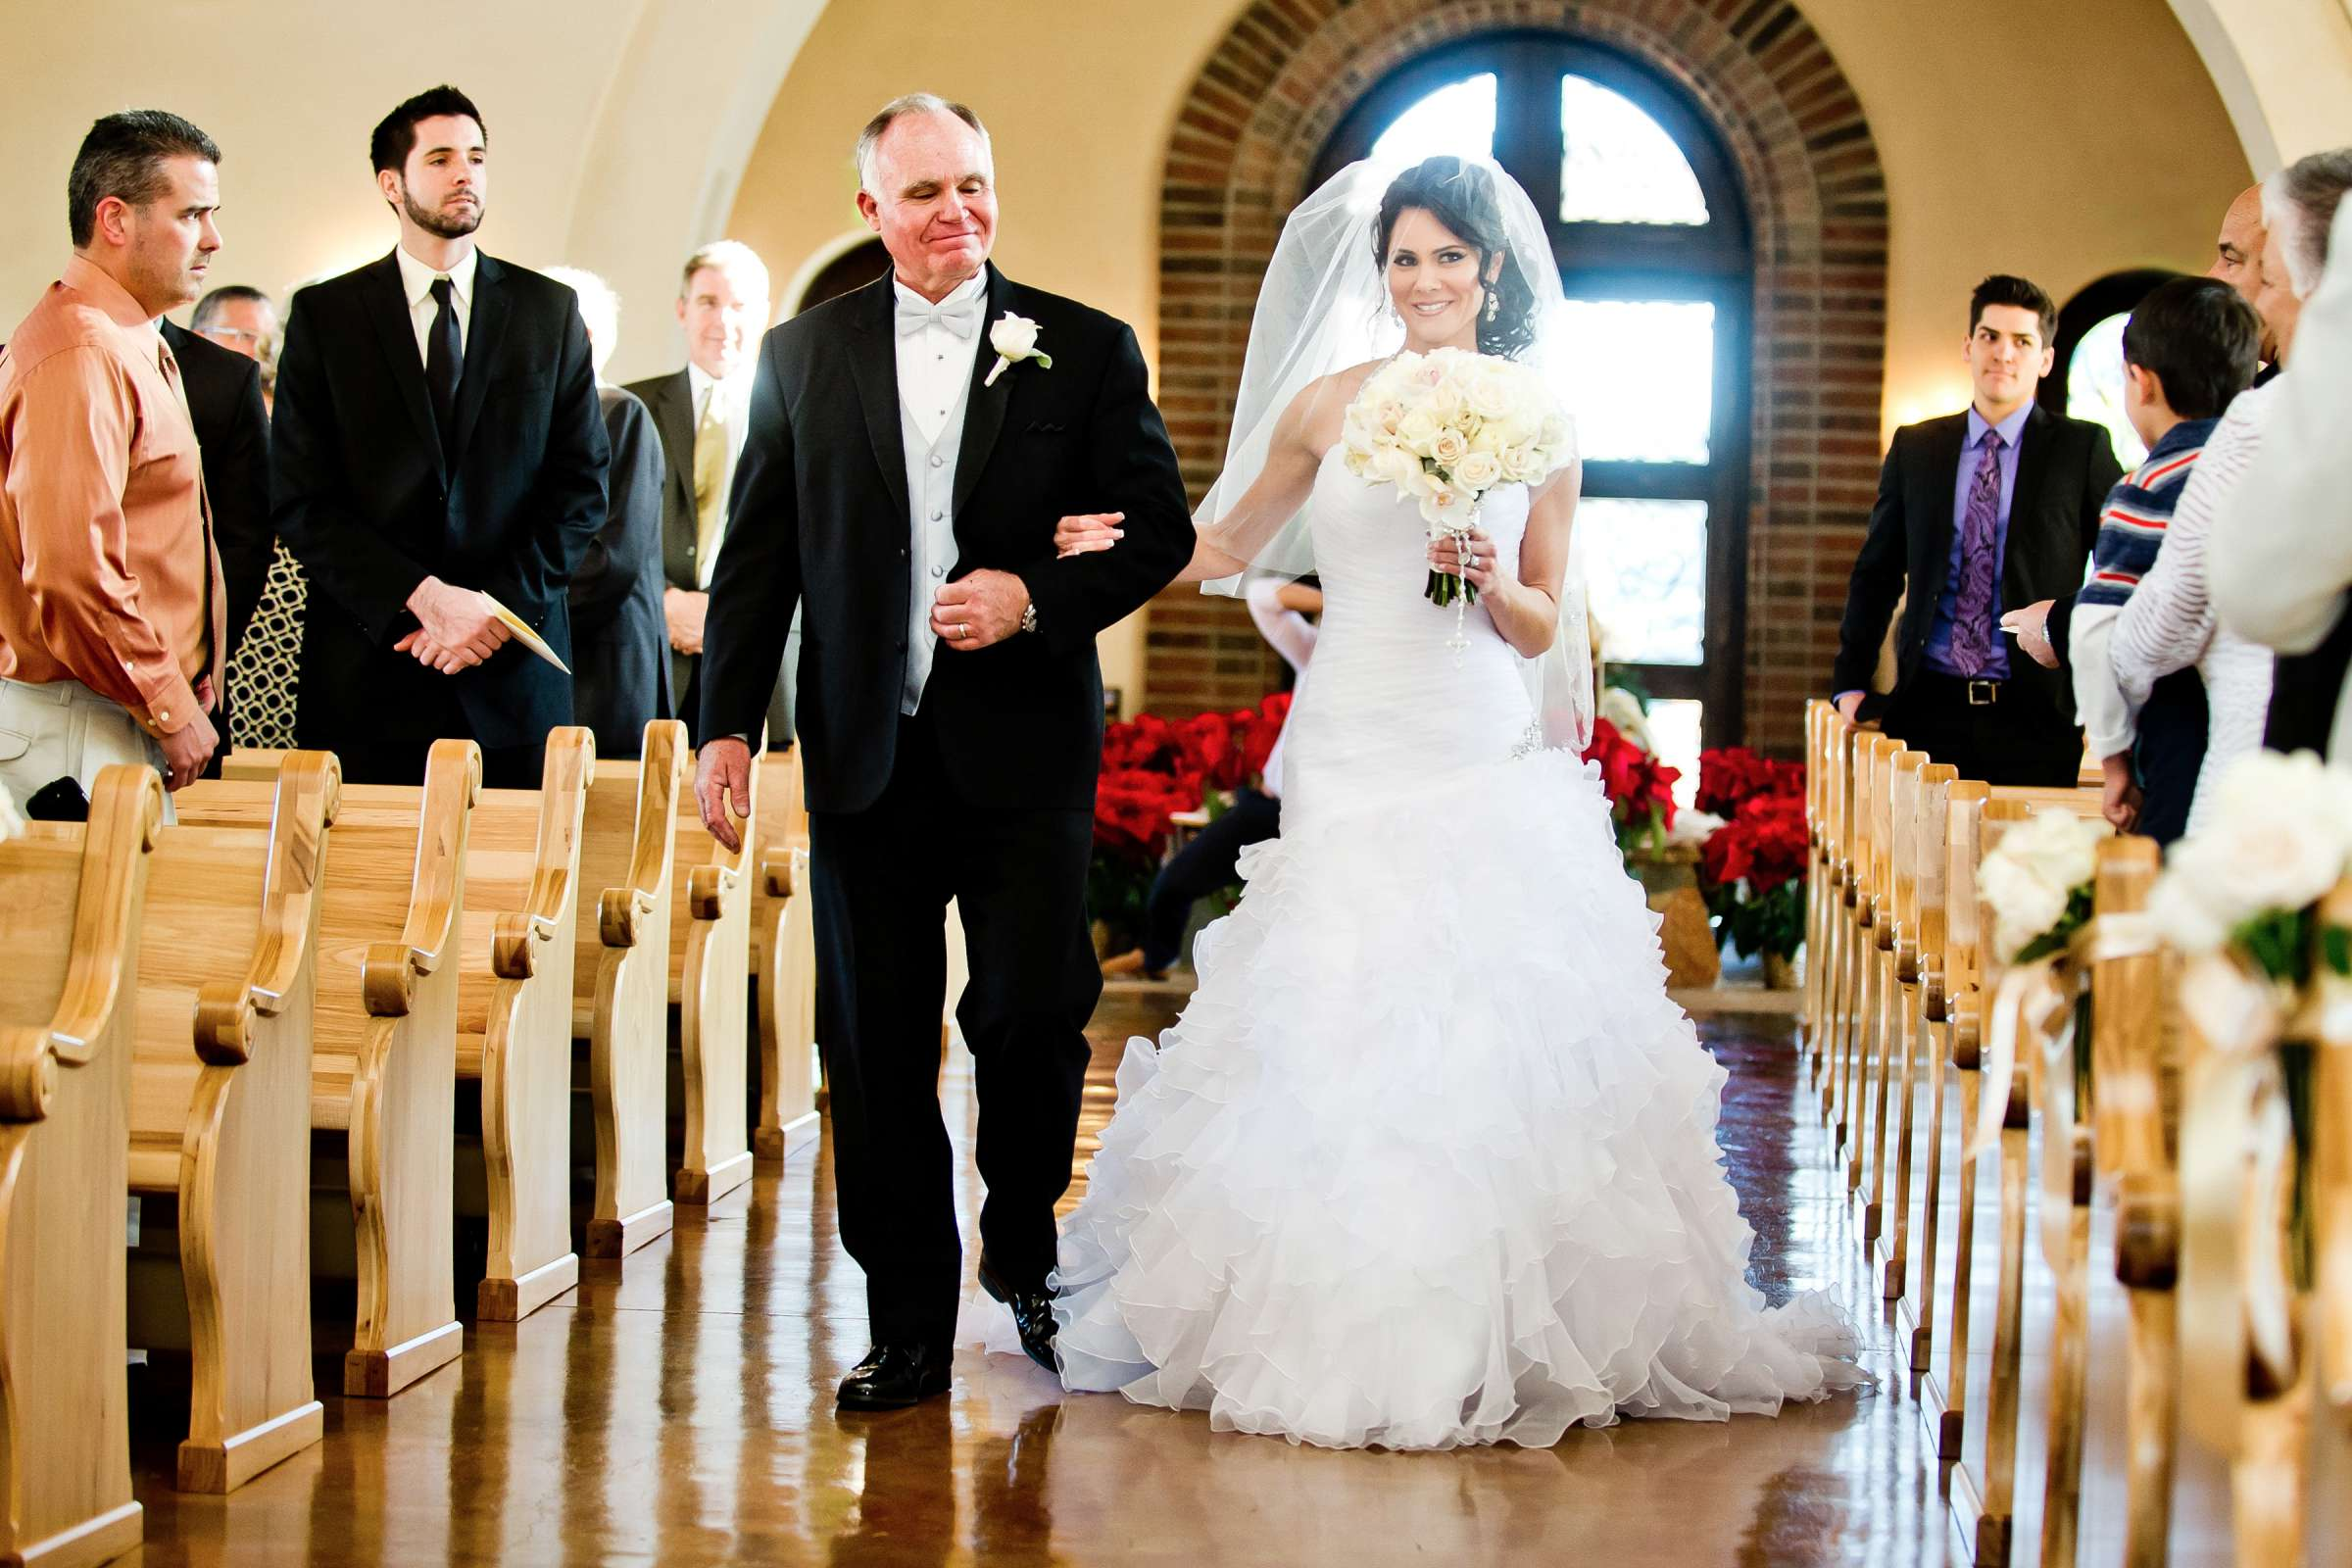 Fairmont Grand Del Mar Wedding, Angela and Tom Wedding Photo #26 by True Photography